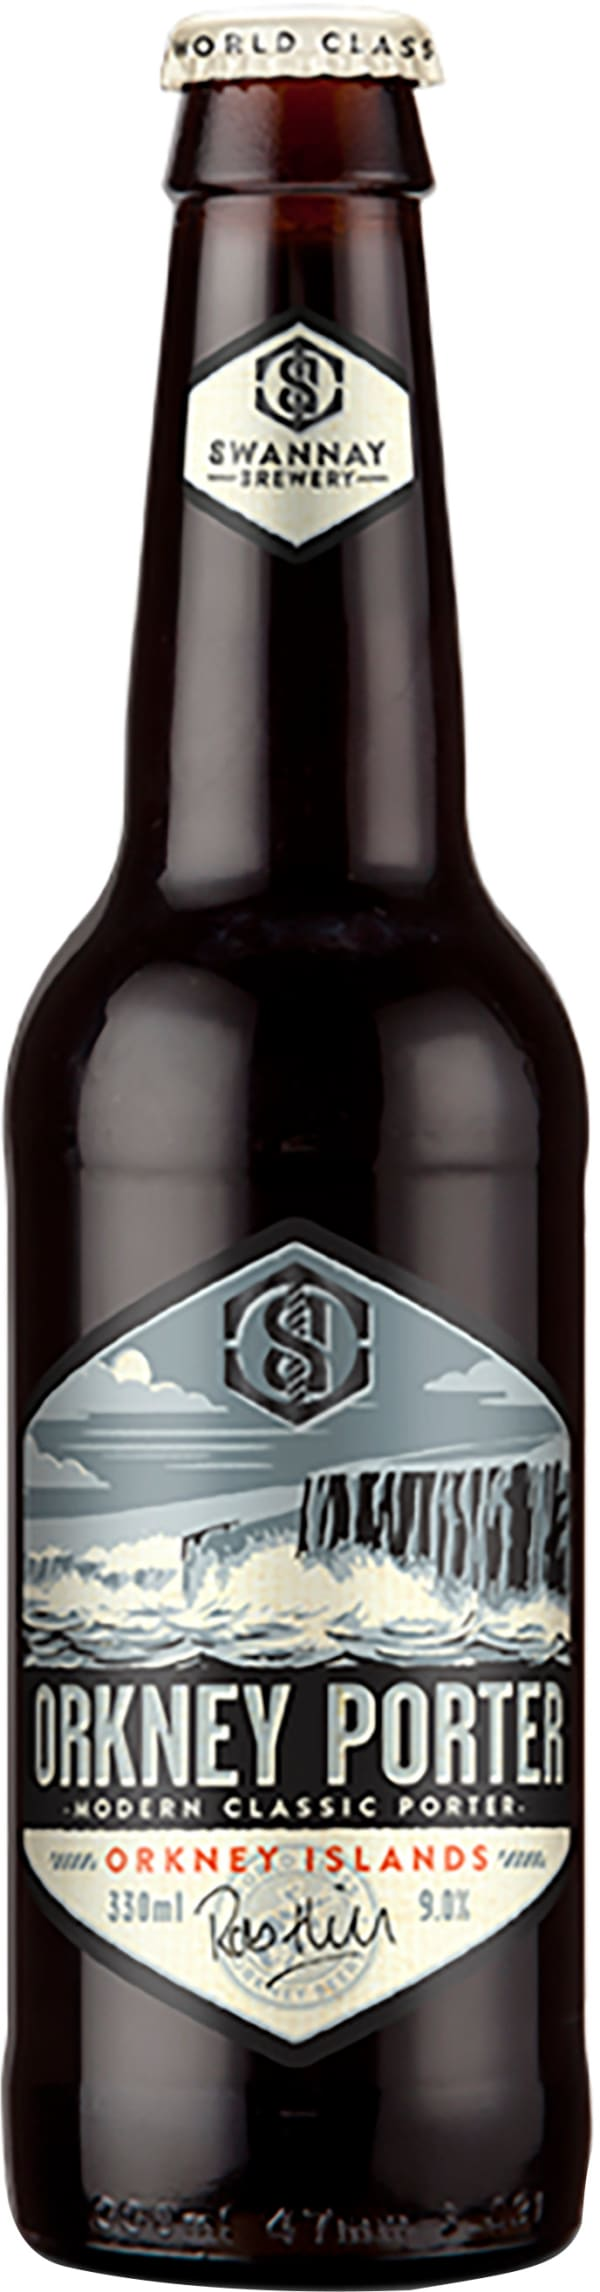 Swannay Orkney Porter